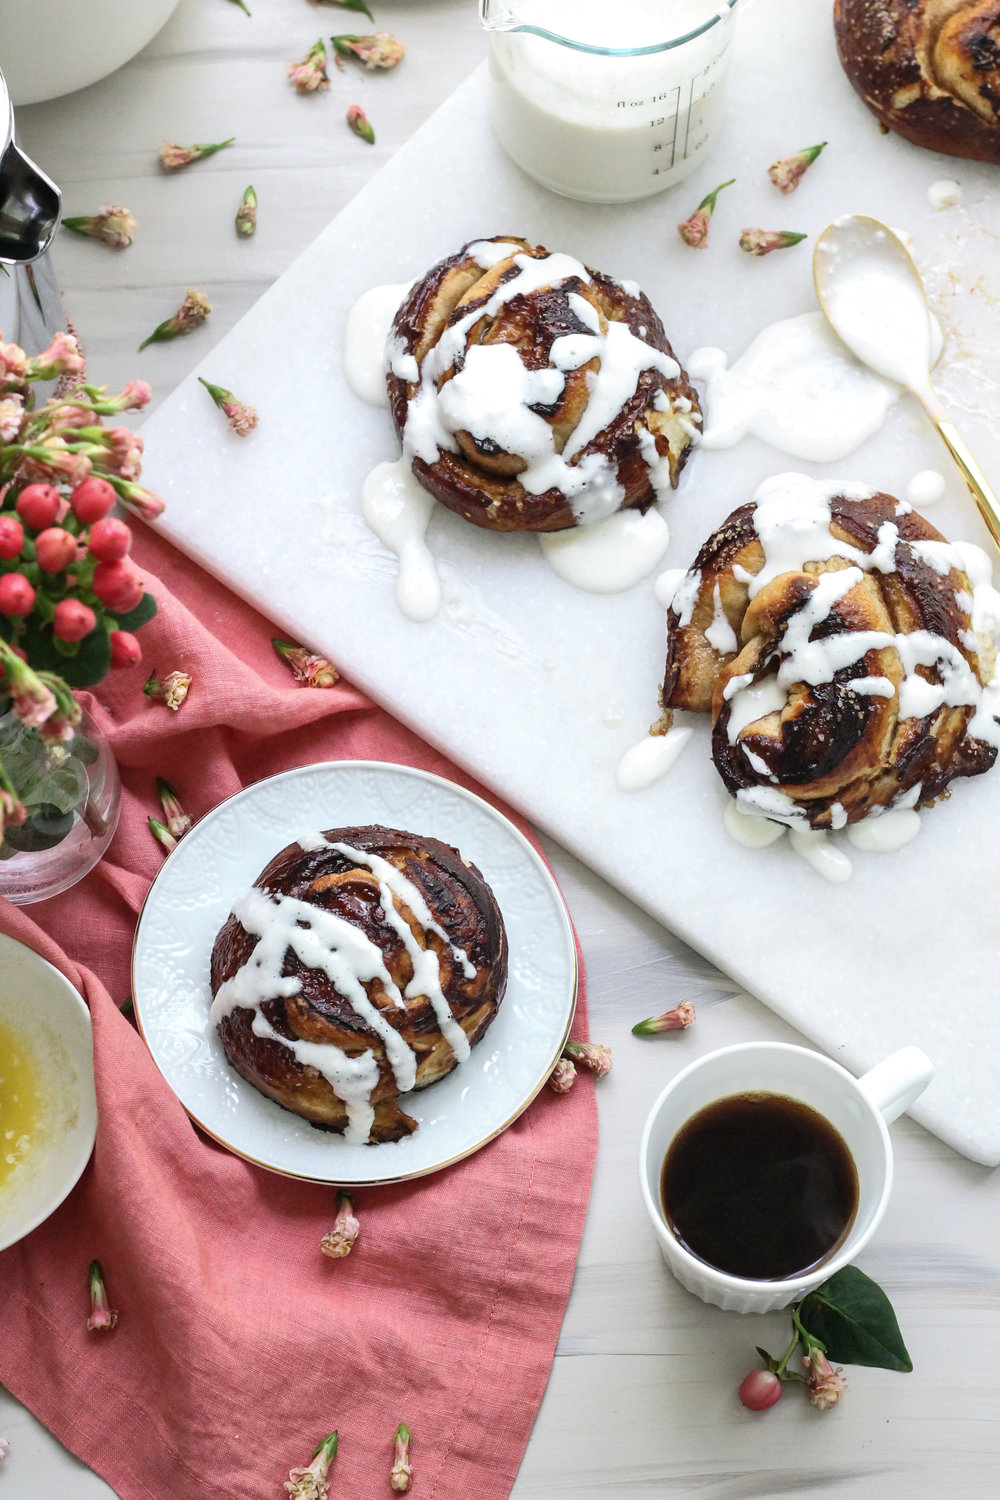 FORGET AVOCADO TOAST, PRETZEL CINNAMON ROLLS ARE THE NEW BEST BREAKFAST [ WWW.PEDANTICFOODIE.COM ]